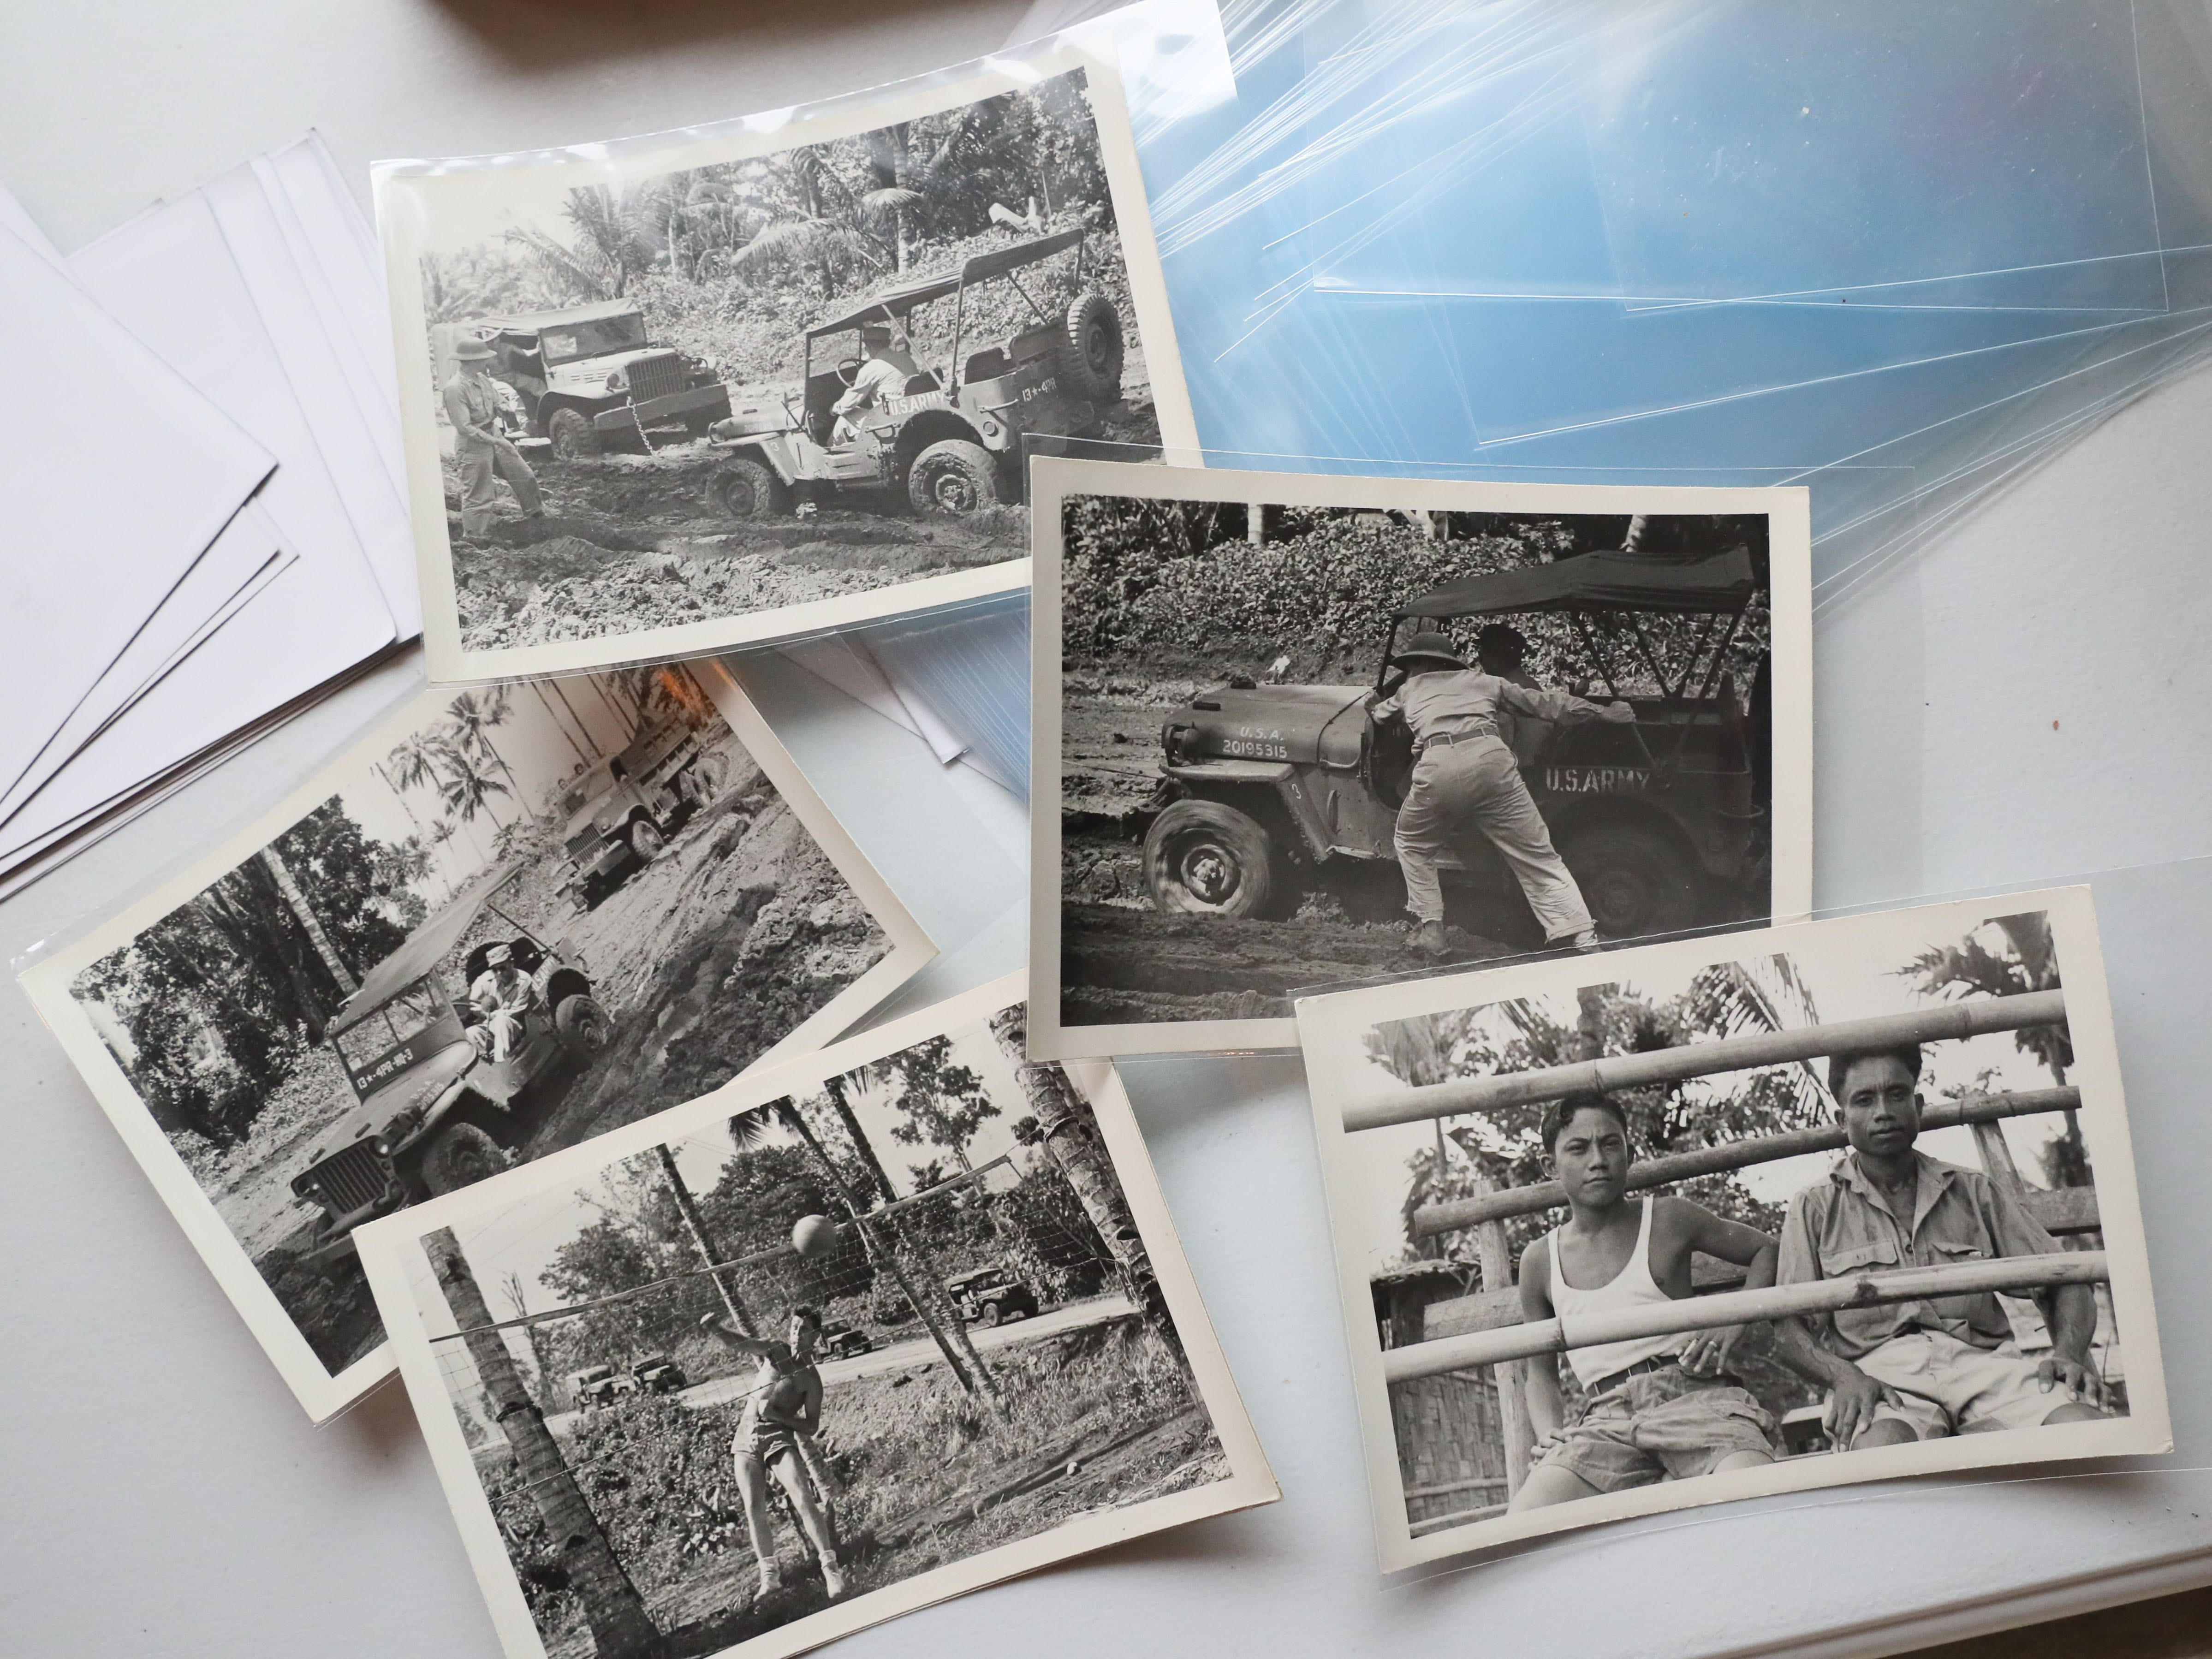 Photographs Jake Skocir took while in the Pacific during World War II.